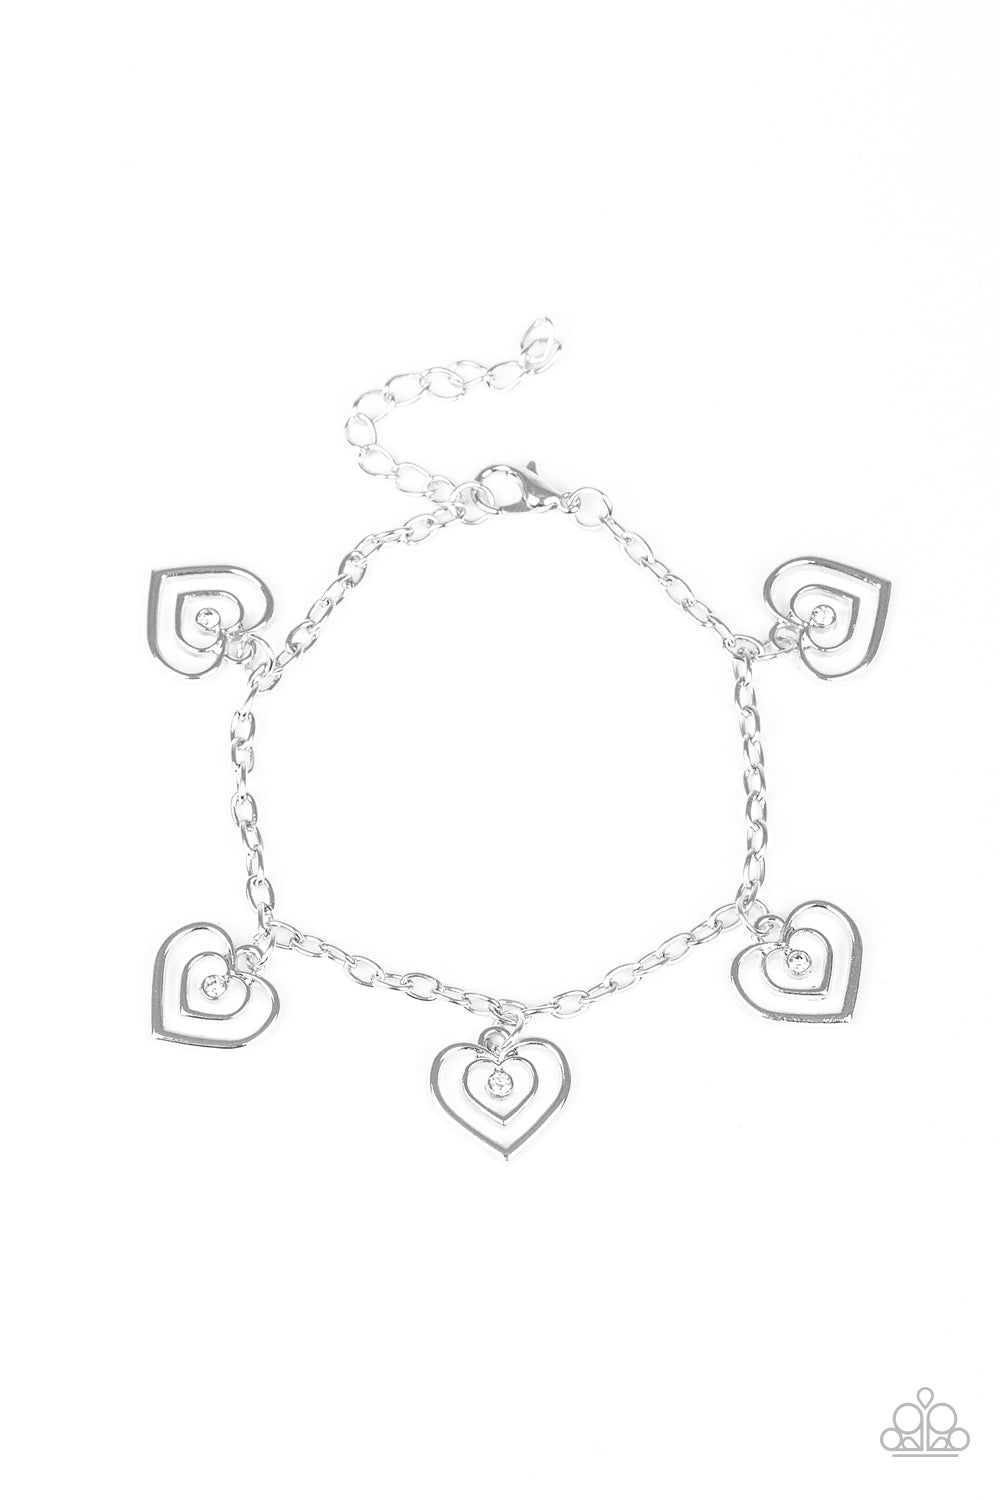 Unbreakable Hearts White Bracelet